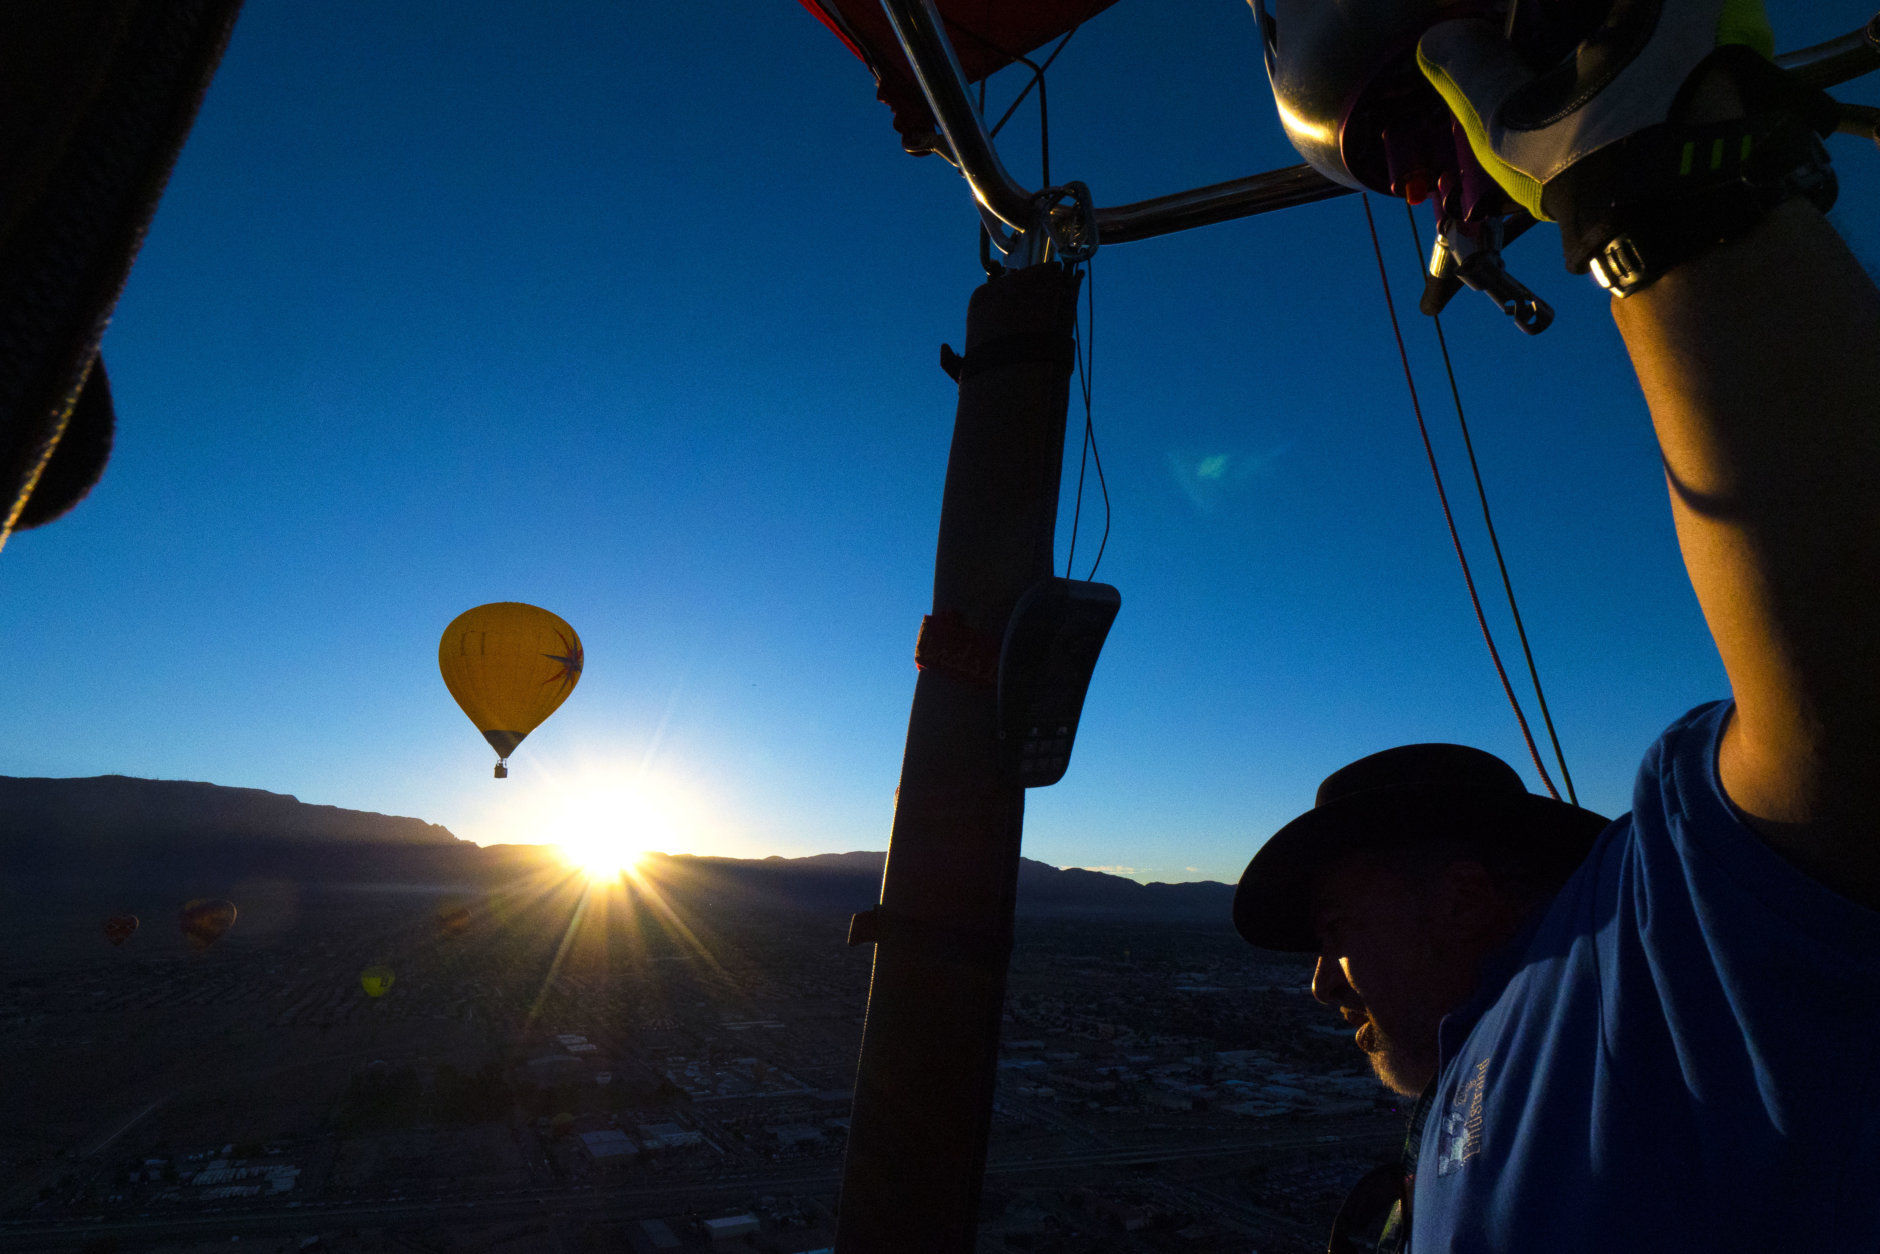 """ALBUQUERQUE, NM - OCTOBER 6: Ken Walter of Waukesha, Wisconsin, pilots his balloon """"Kay's Winddancer II"""" during the Mass Ascension on the first day of the 2018 Albuquerque International Balloon Fiesta on October 6, 2018 in Albuquerque, New Mexico. Walter has been flying balloons for thirty years and been coming to the Fiesta for twenty. The Albuquerque Balloon Fiesta is the largest hot air balloon festival, drawing more than 500 balloons from all over the world.  (Photo by Maddie Meyer/Getty Images for Lumix)"""